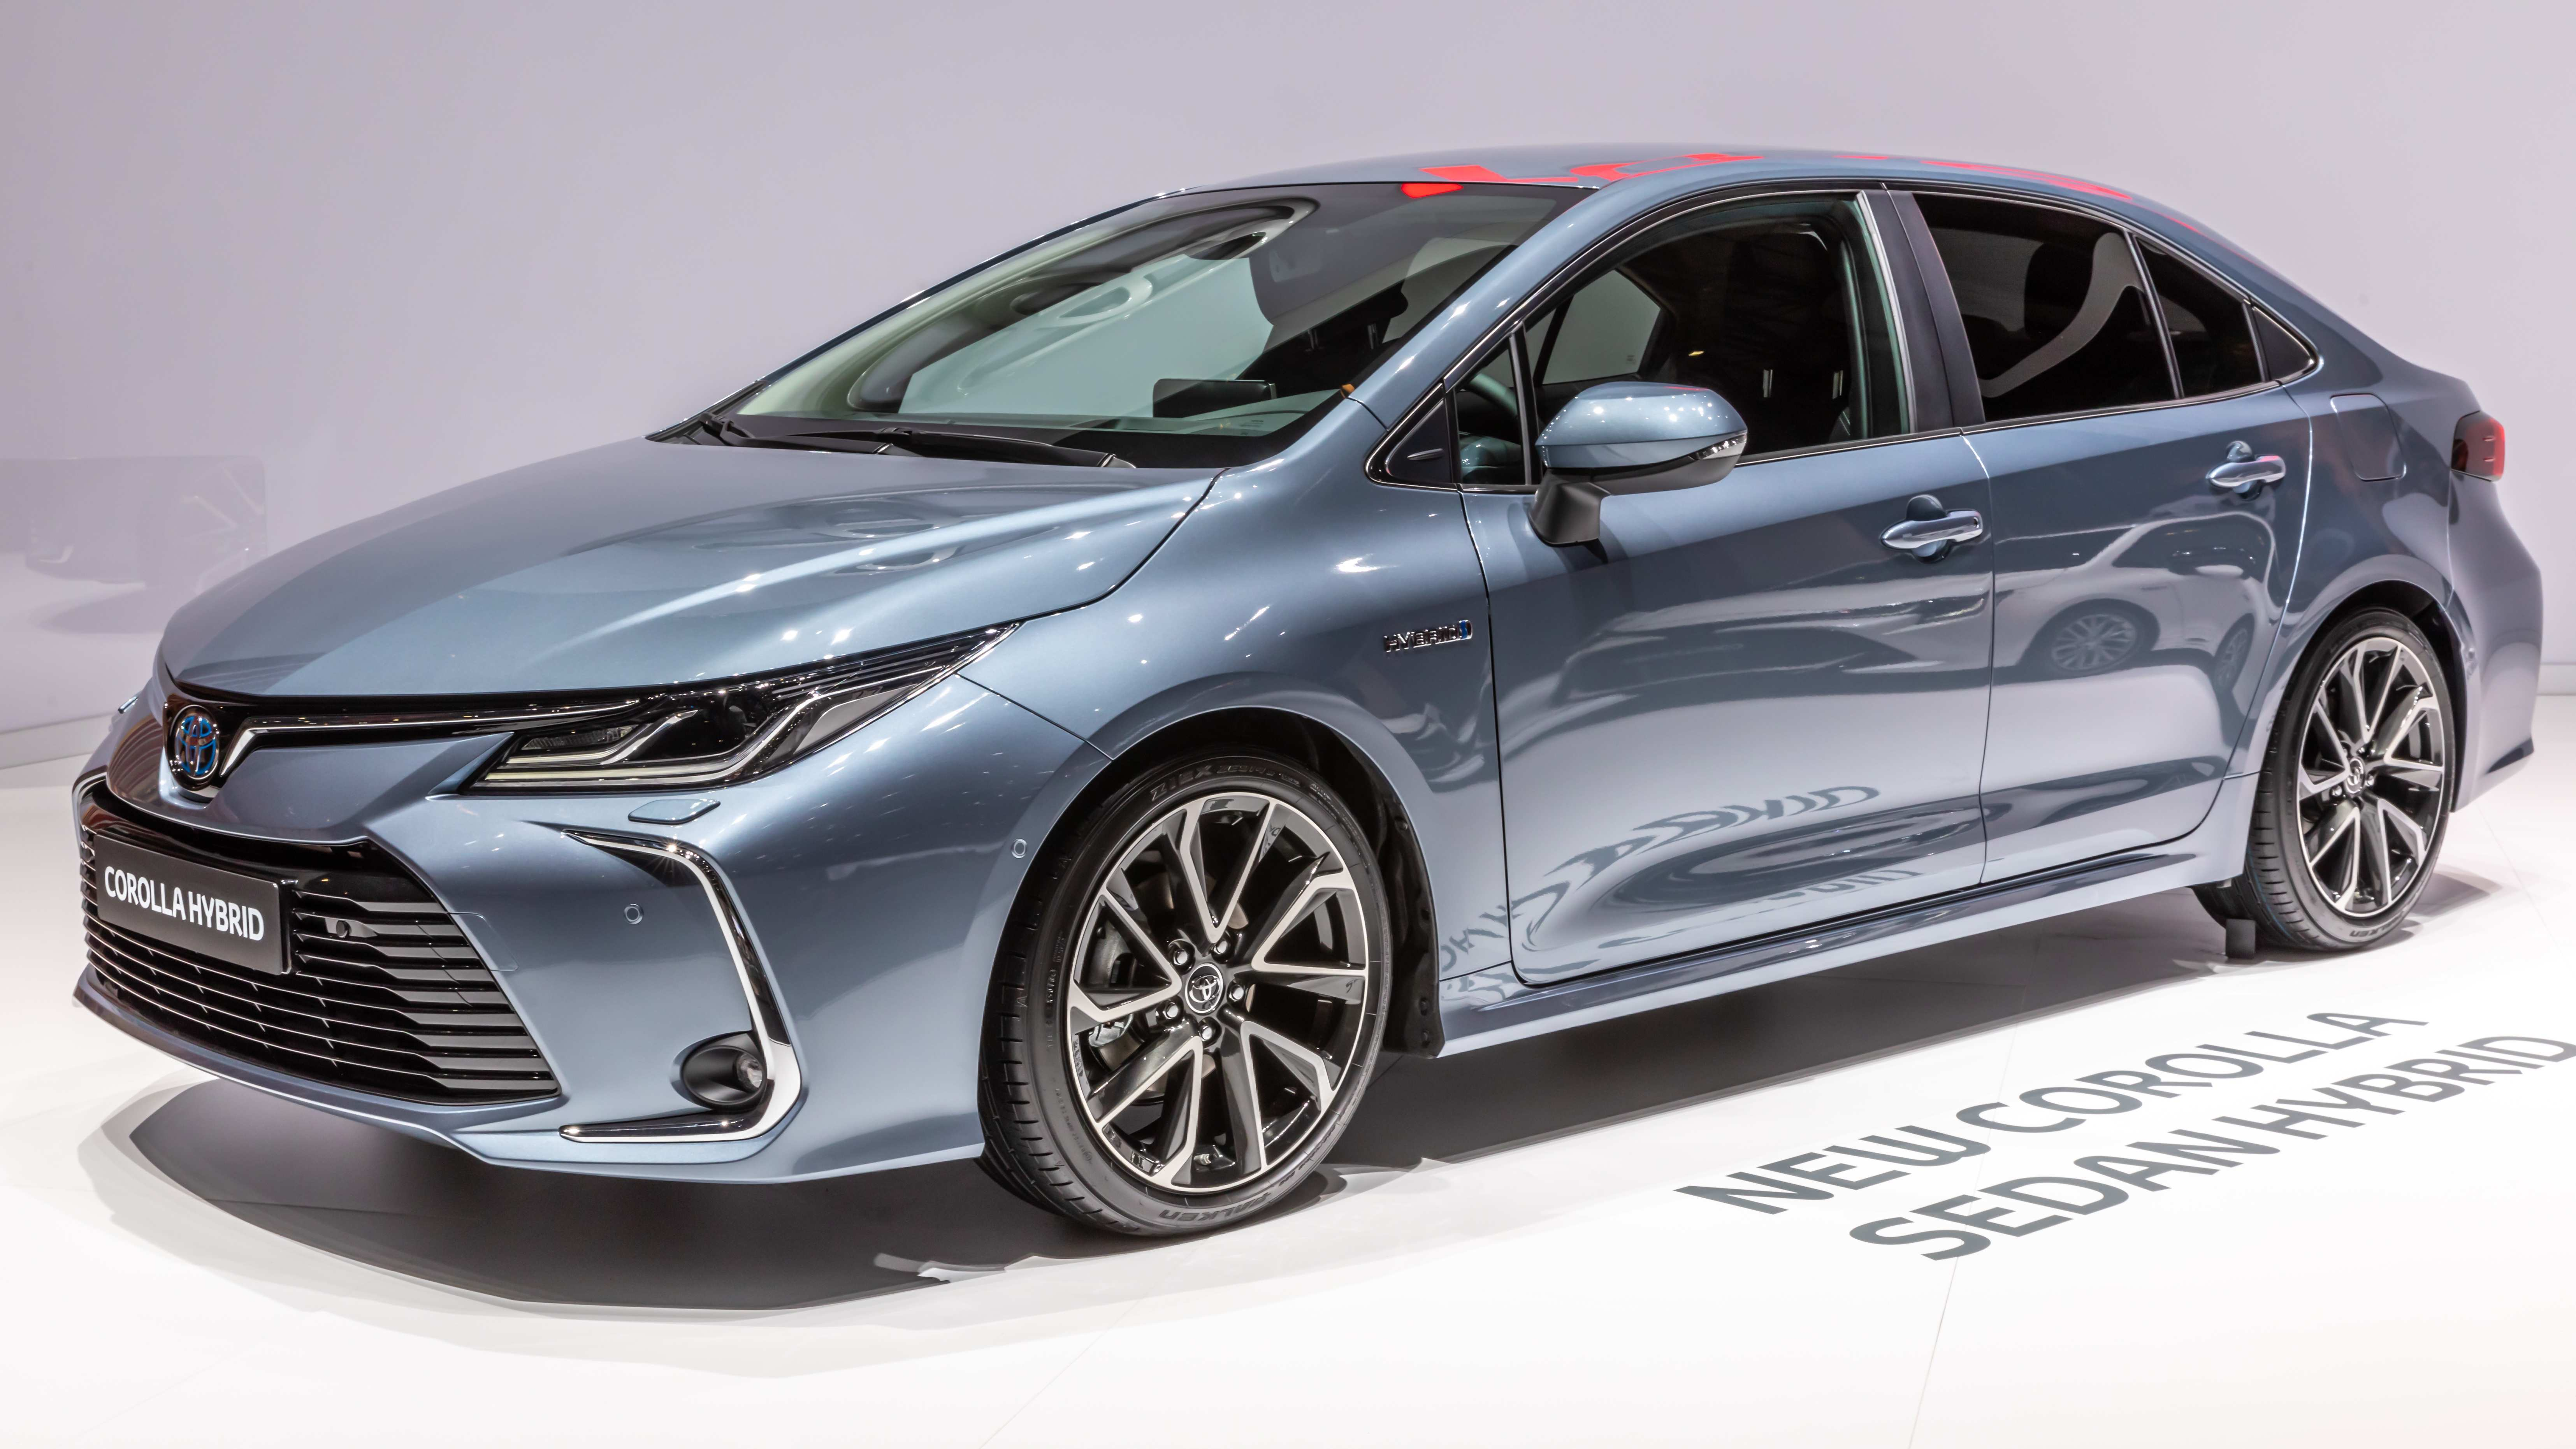 26 All New Toyota Altis 2020 Thailand Spesification by Toyota Altis 2020 Thailand